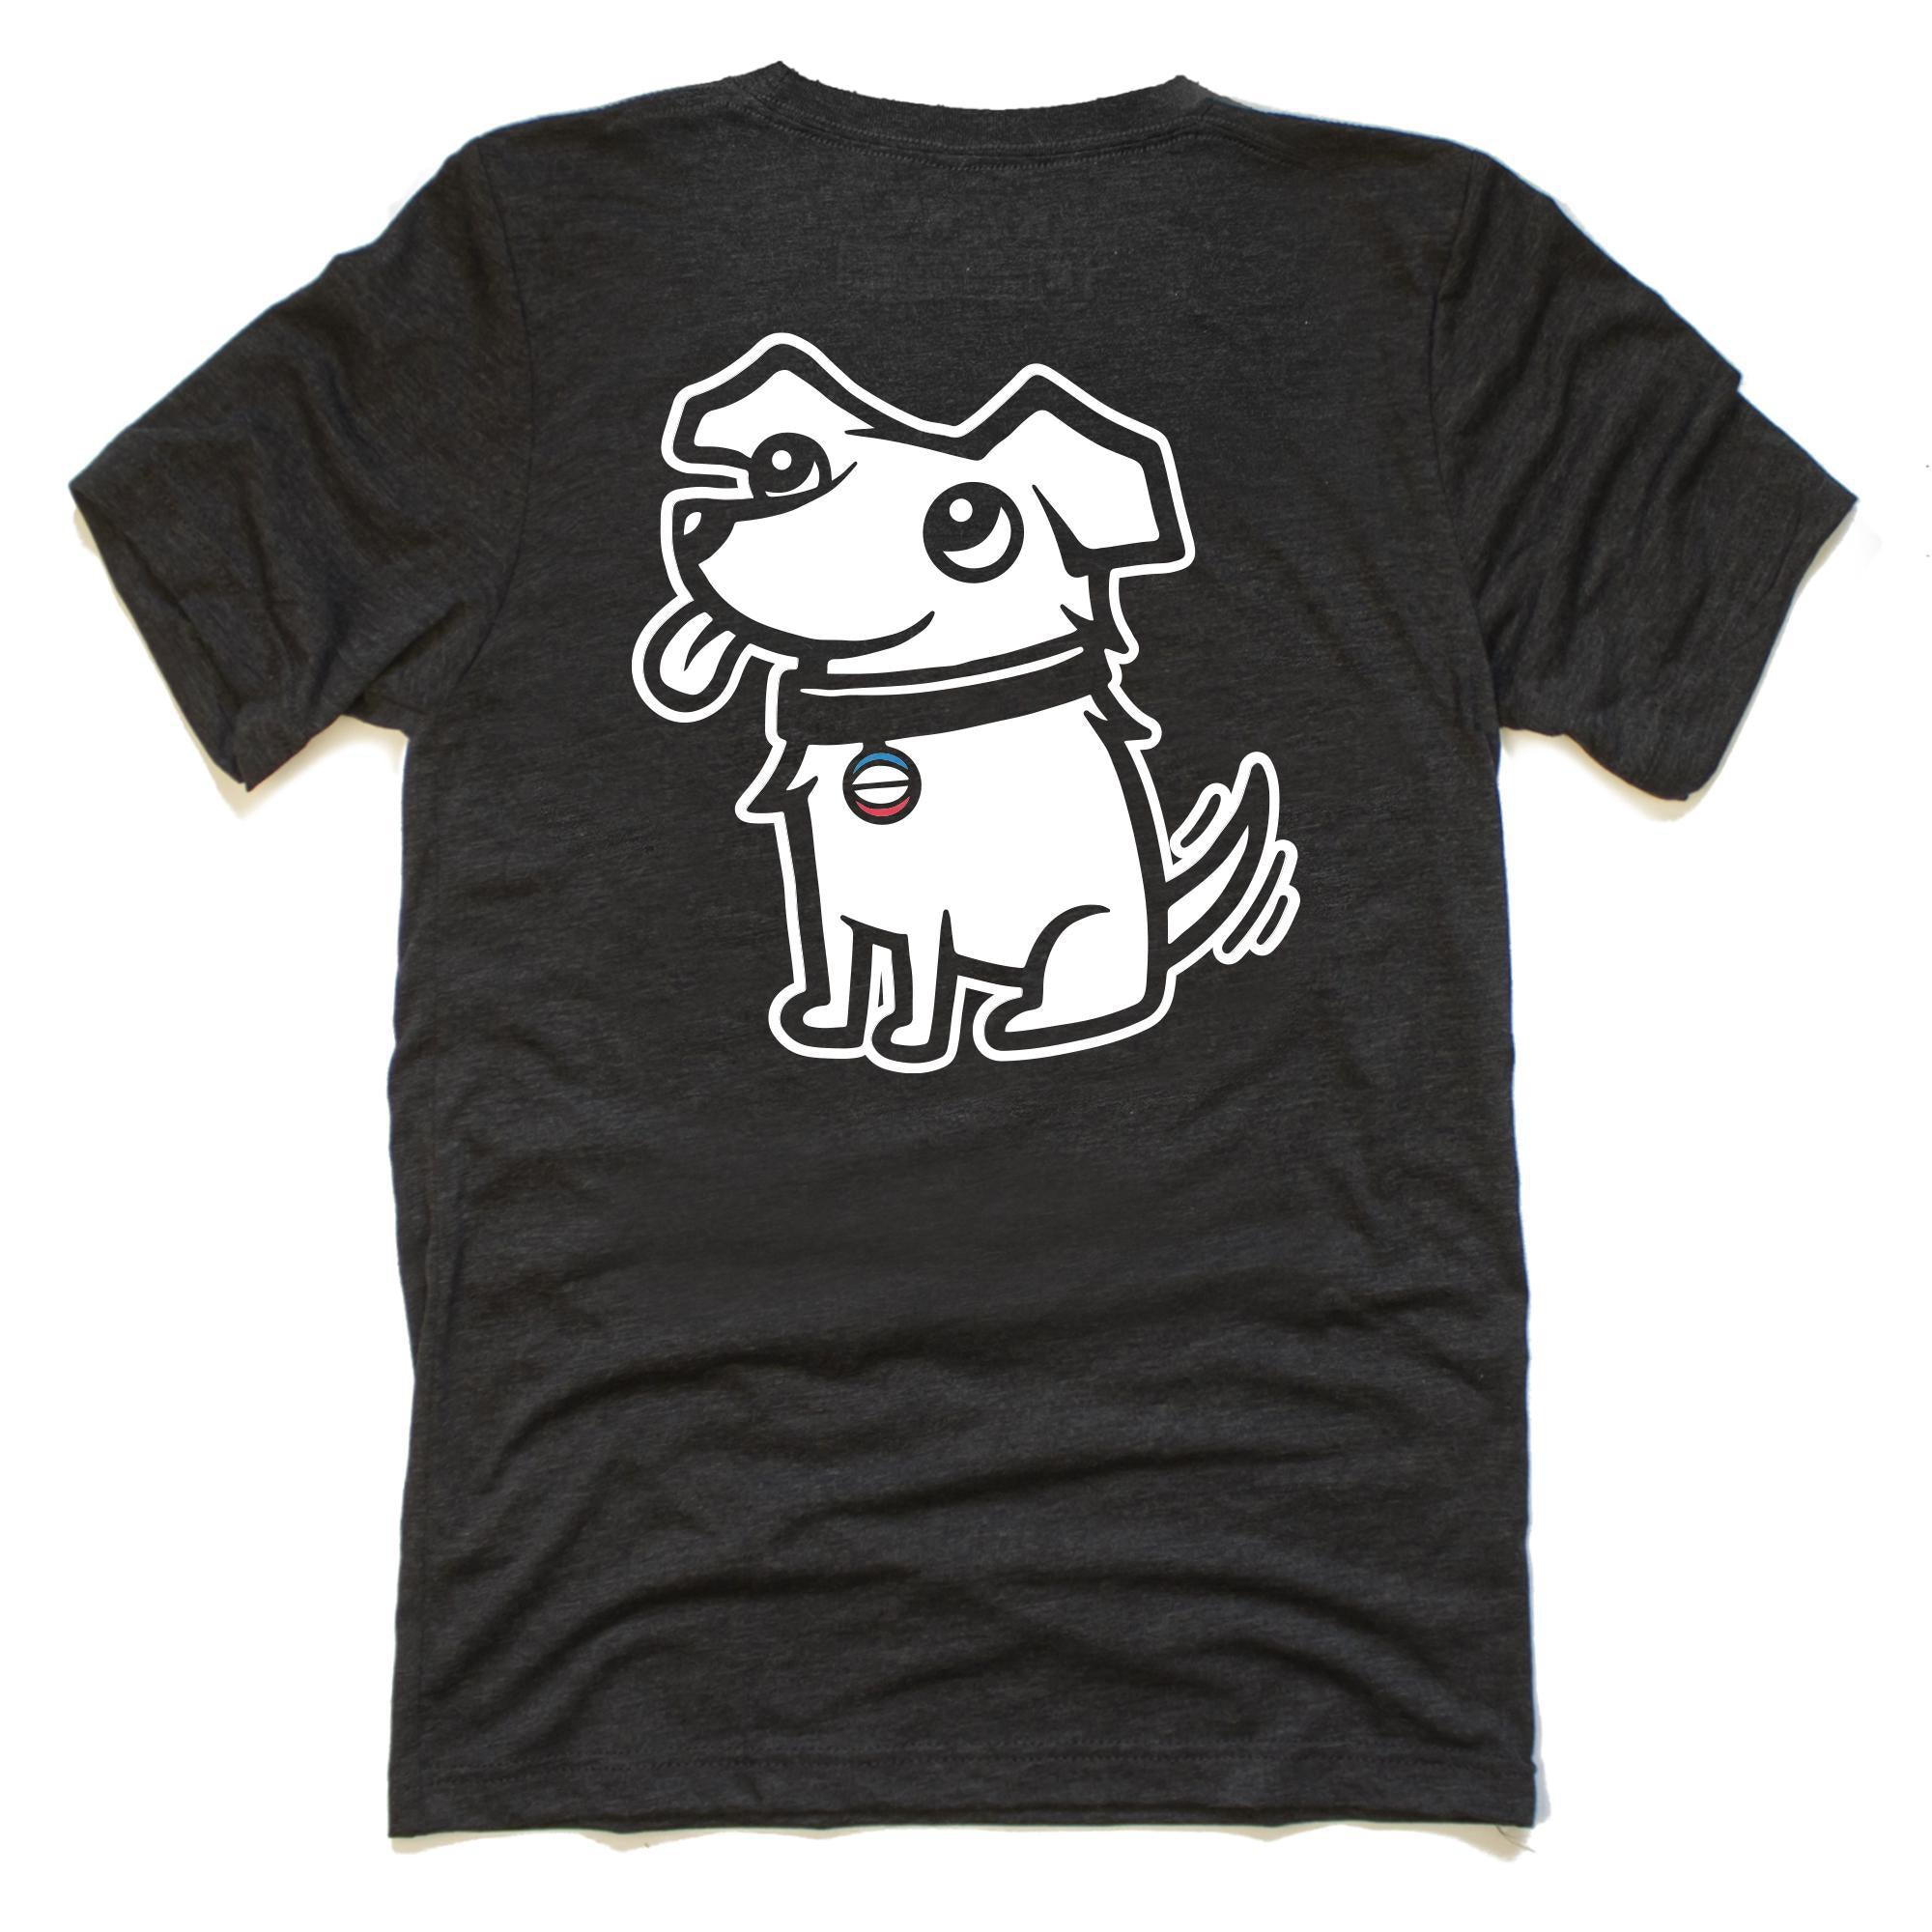 Dogs, Bruh T-Shirt-T-Shirt-KY for KY Store